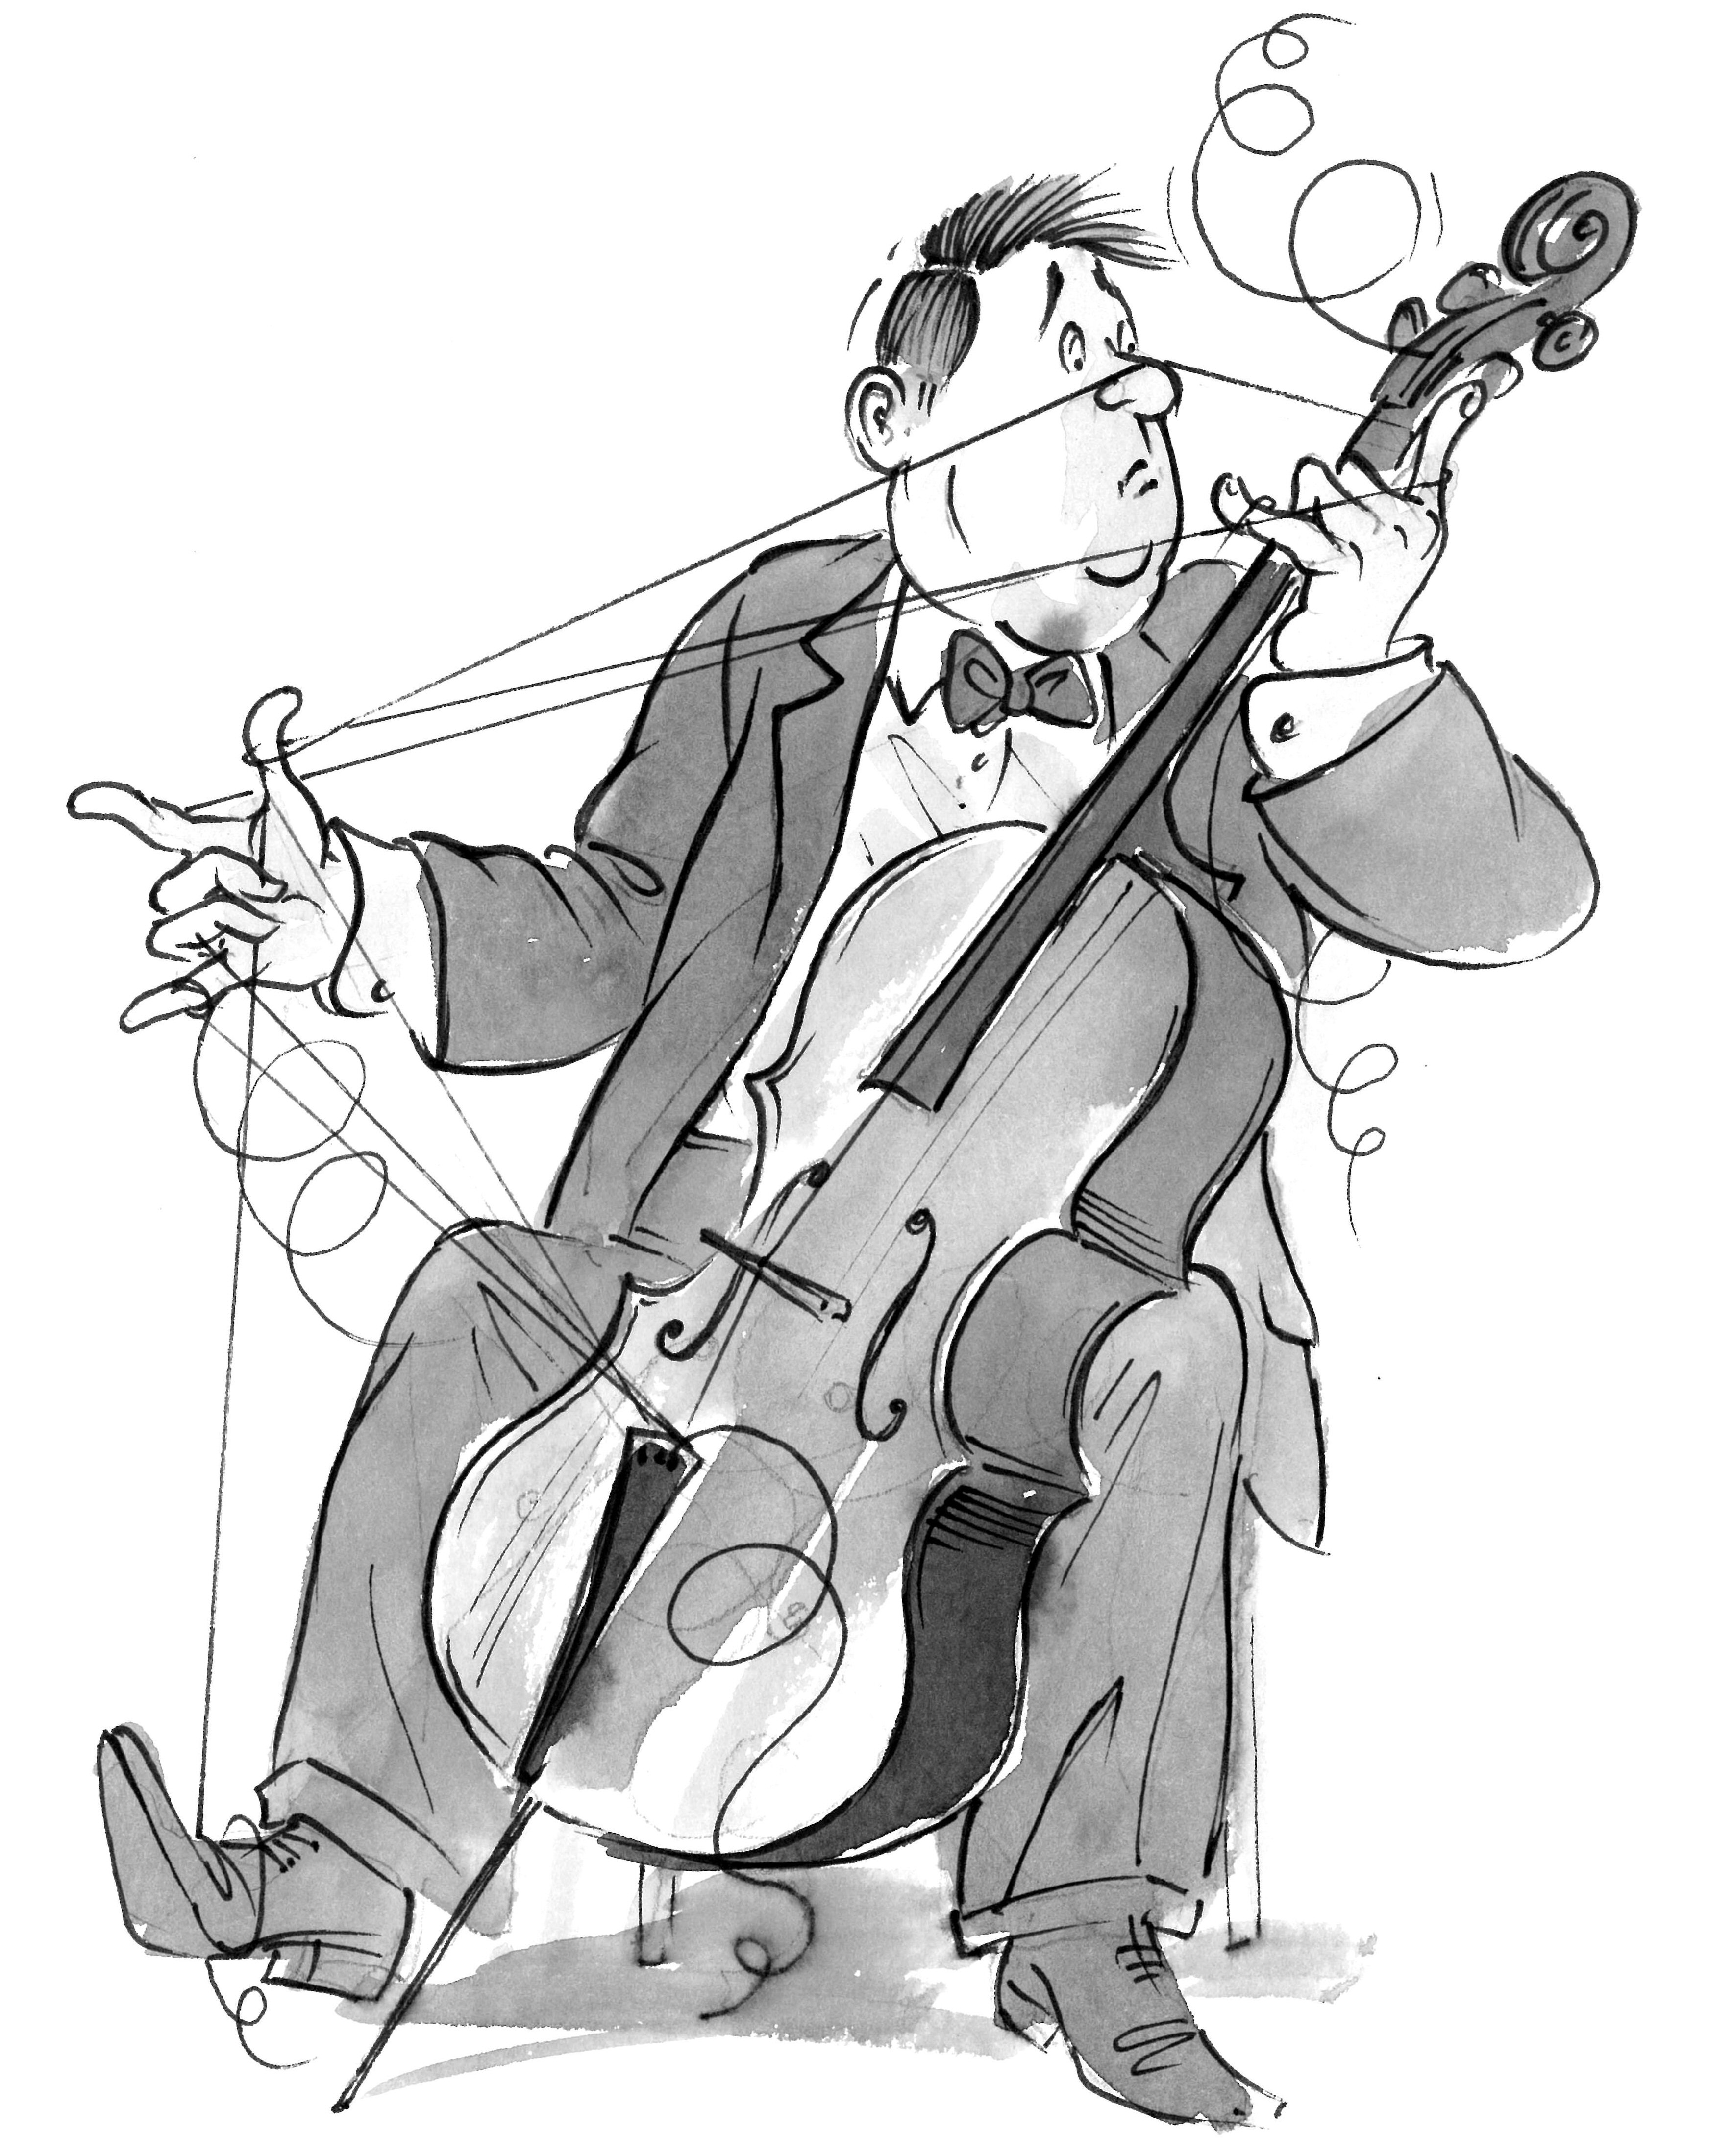 Cartoon of a cellist with all strings broken